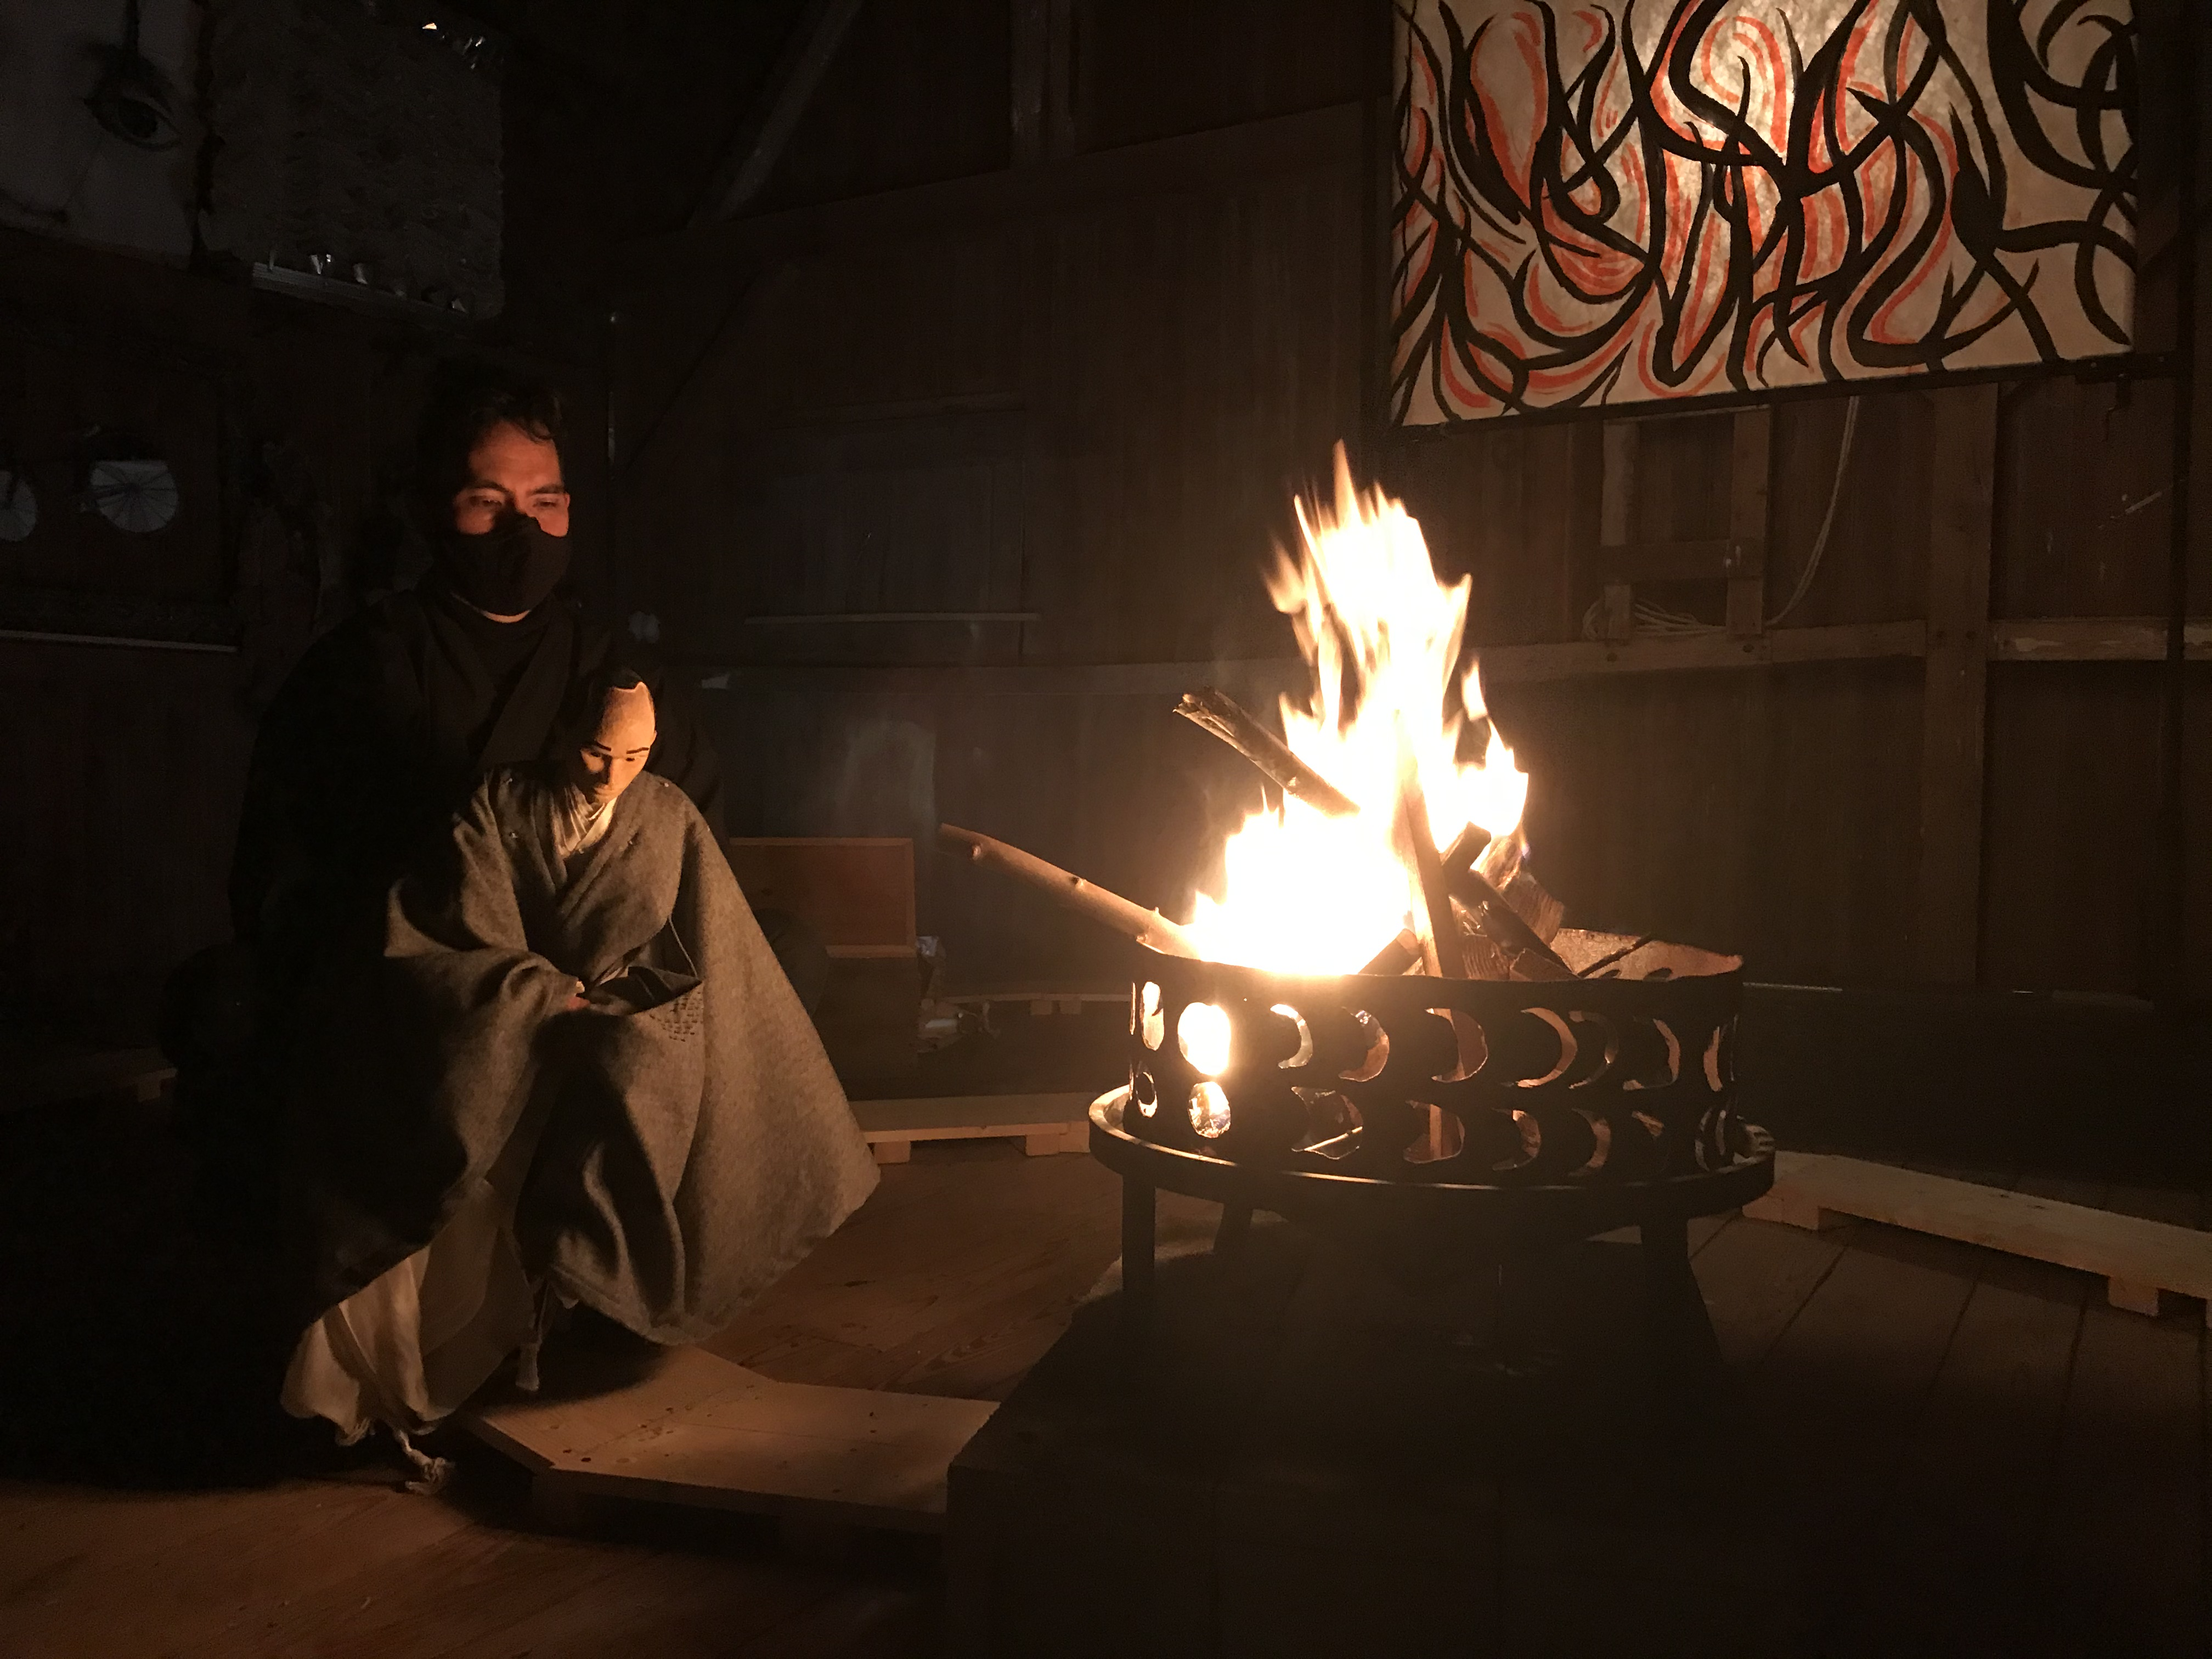 Tom Lee. A puppeteer sits by a real fire controlled in a pit in a dark room with heavy shadows. Graffiti is seen among the shadows on the wall behind.